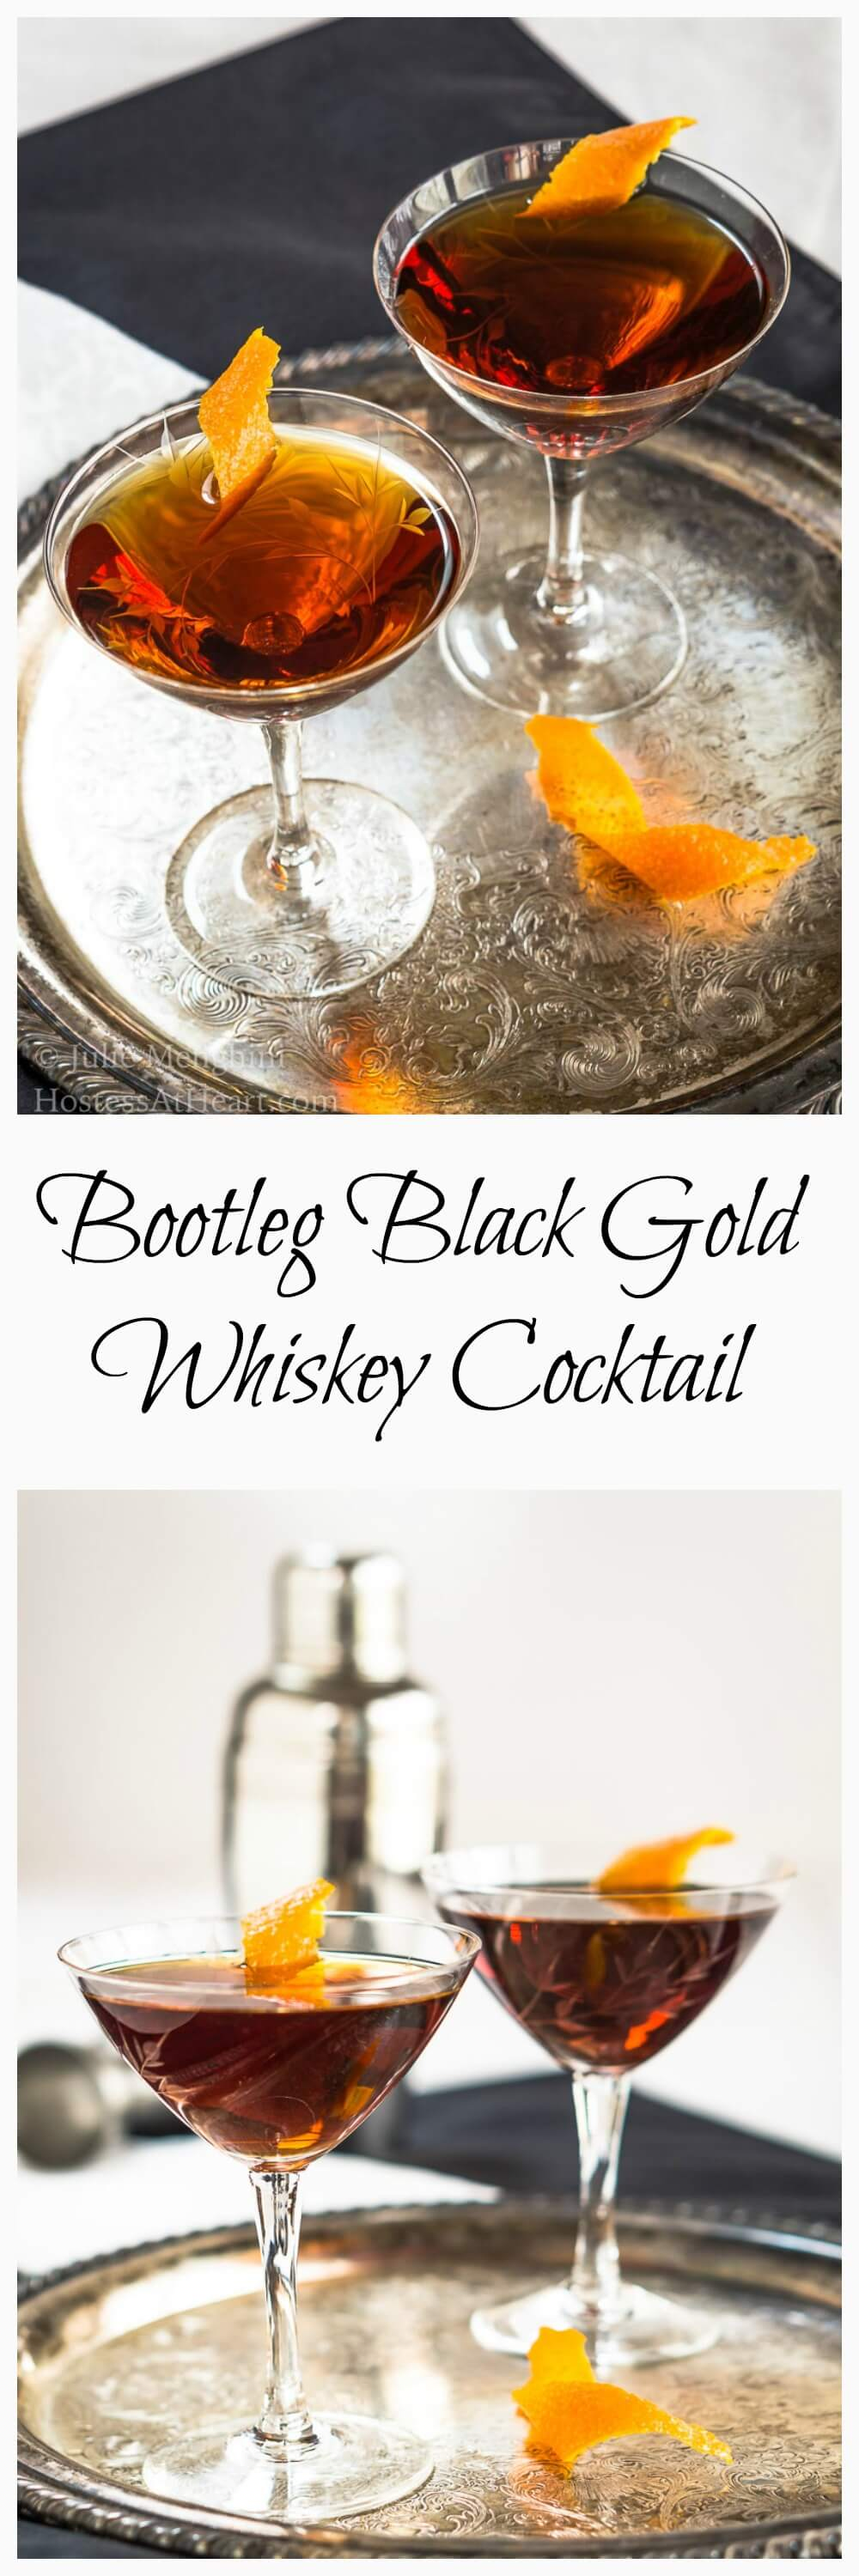 Bootleg Black Gold Whiskey cocktail is smooth, slightly sweet with a touch of orange. It's a great after dinner or an anytime sipper. | HostessAtHeart.com  #cocktail #drinks #whiskey #easyrecipe